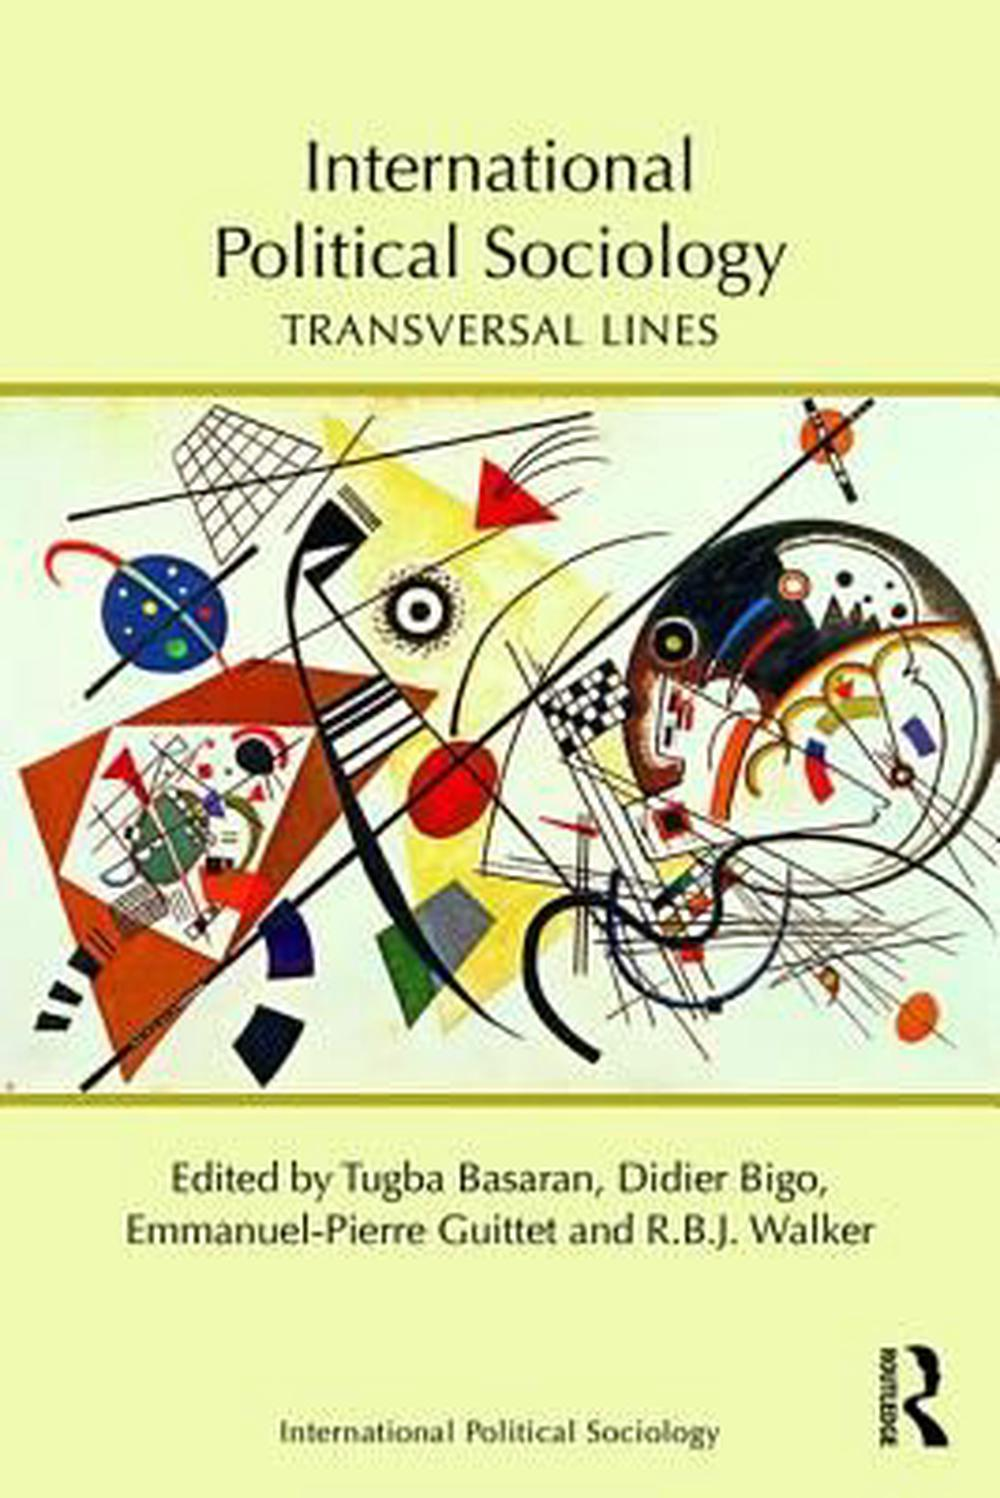 Perspectives From International Political Sociology: Transversal Lines in International Relations (Routledge Studies in International Political Sociology)